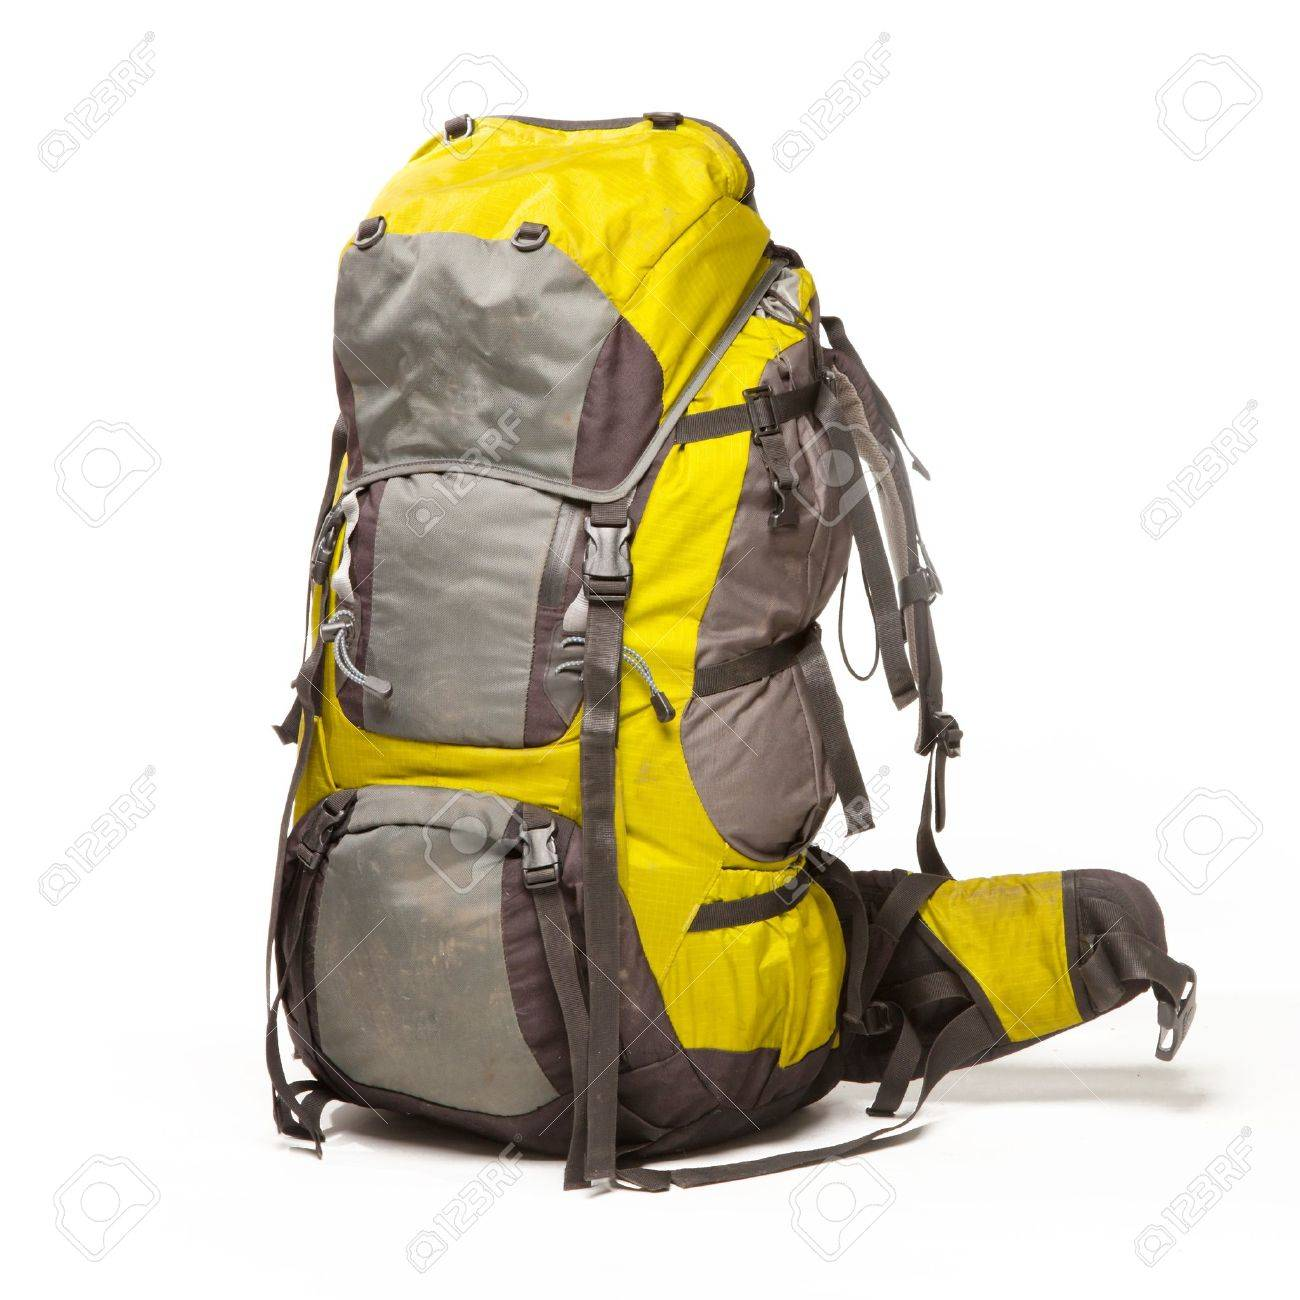 Tourist backpack on white background Stock Photo - 18671592 aa4dd31ca2607